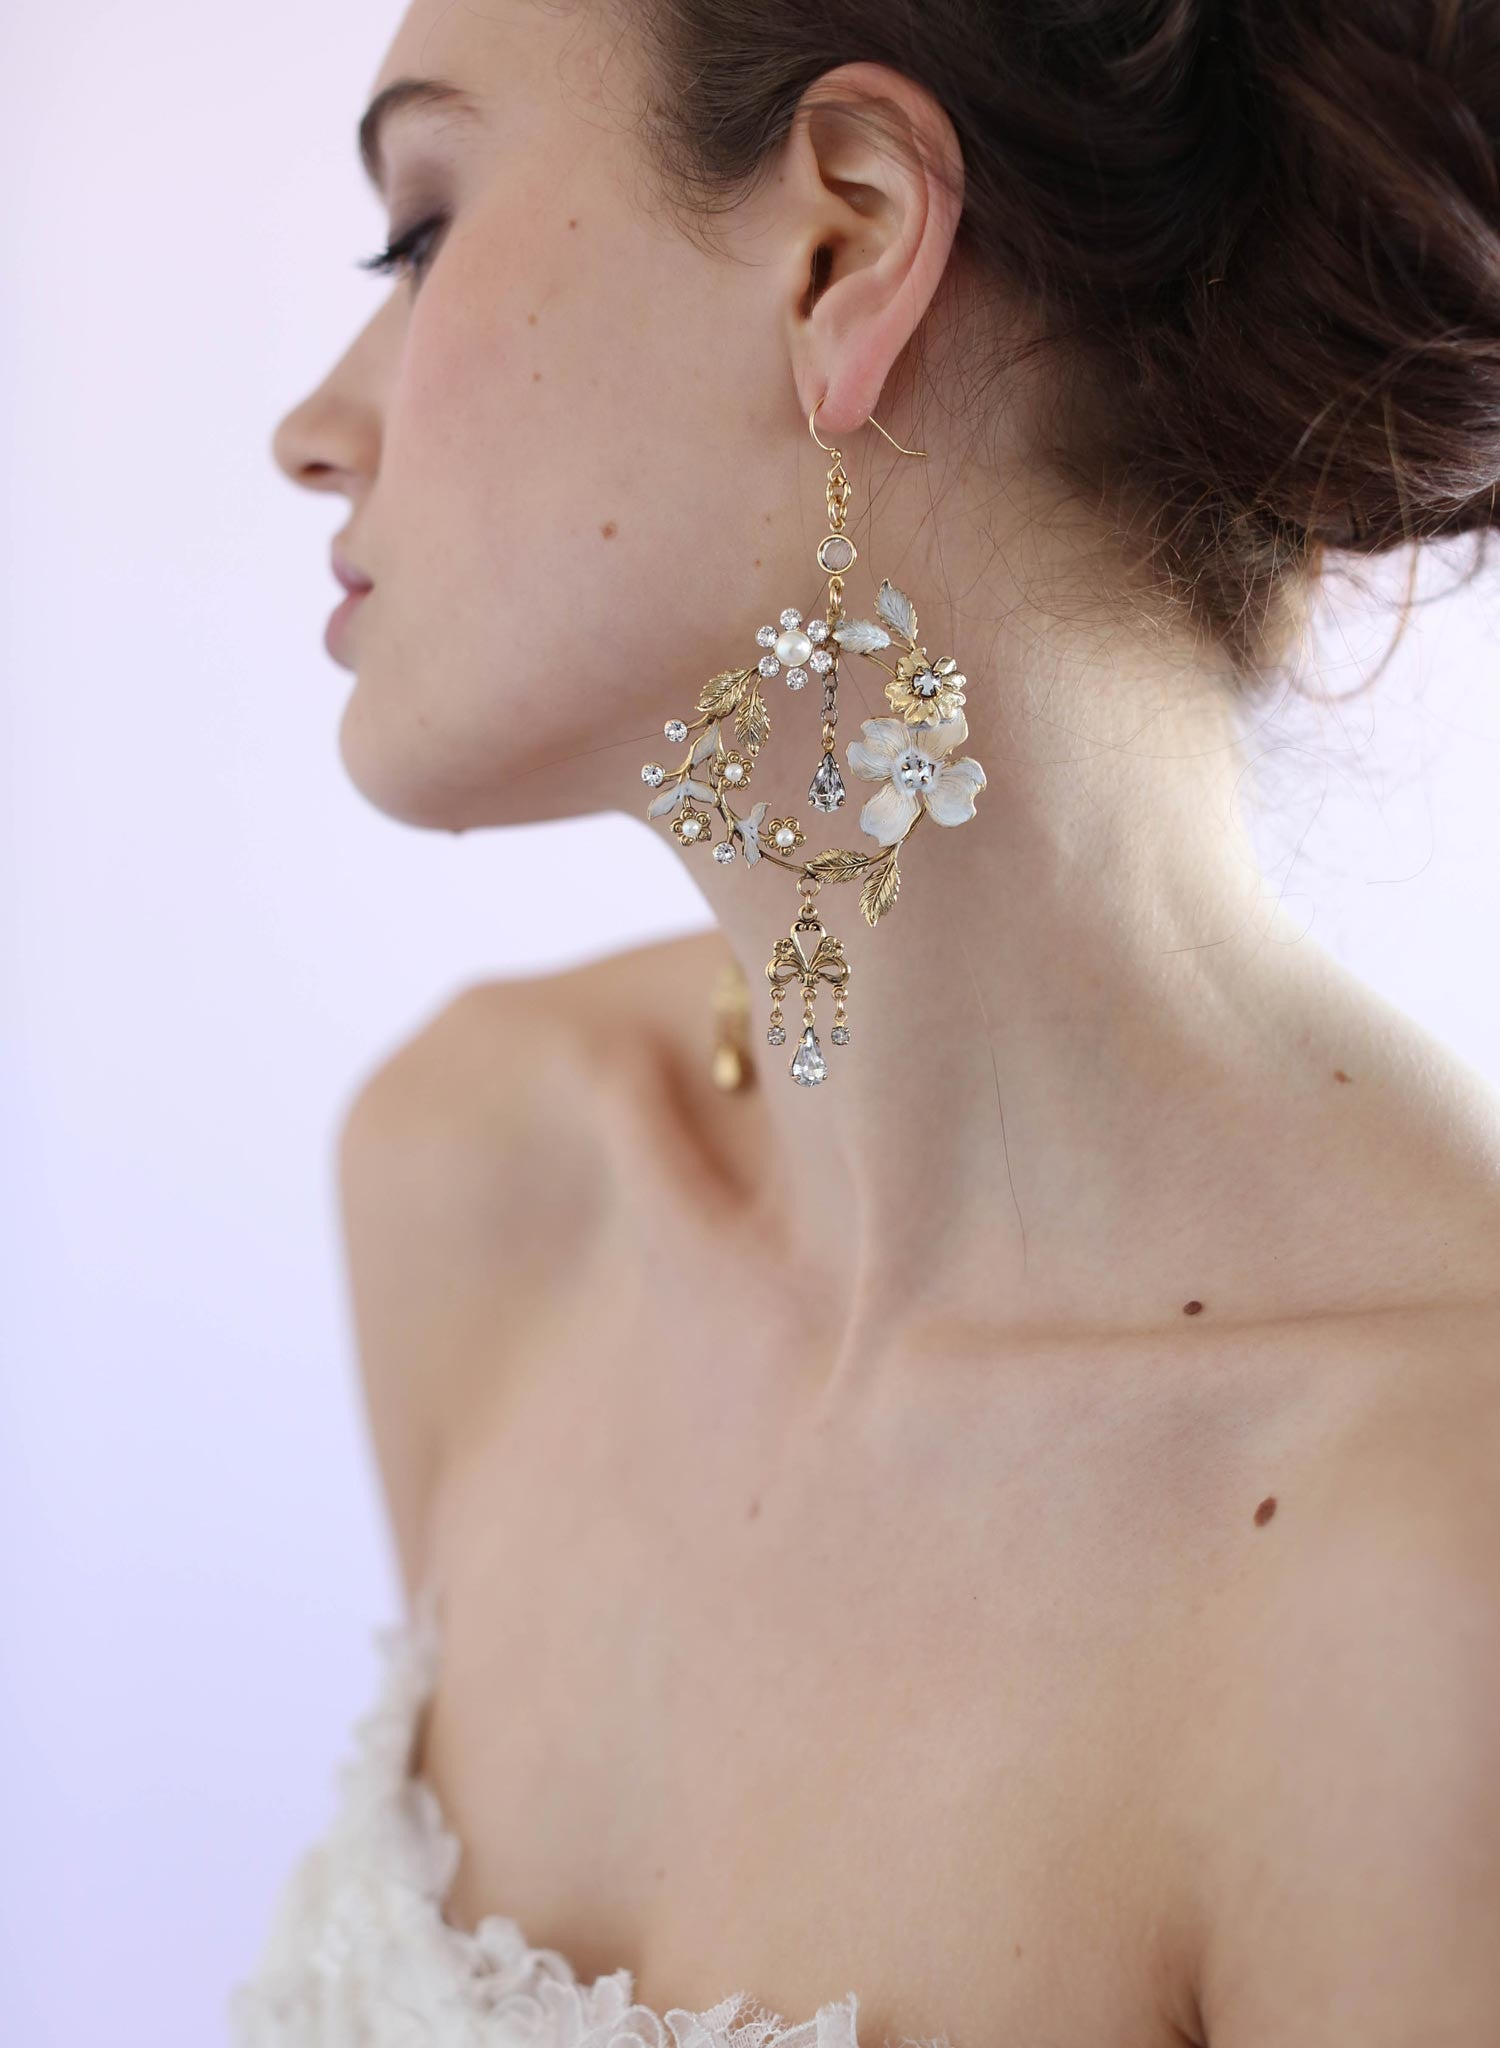 Dramatic garden earrings - Style #629